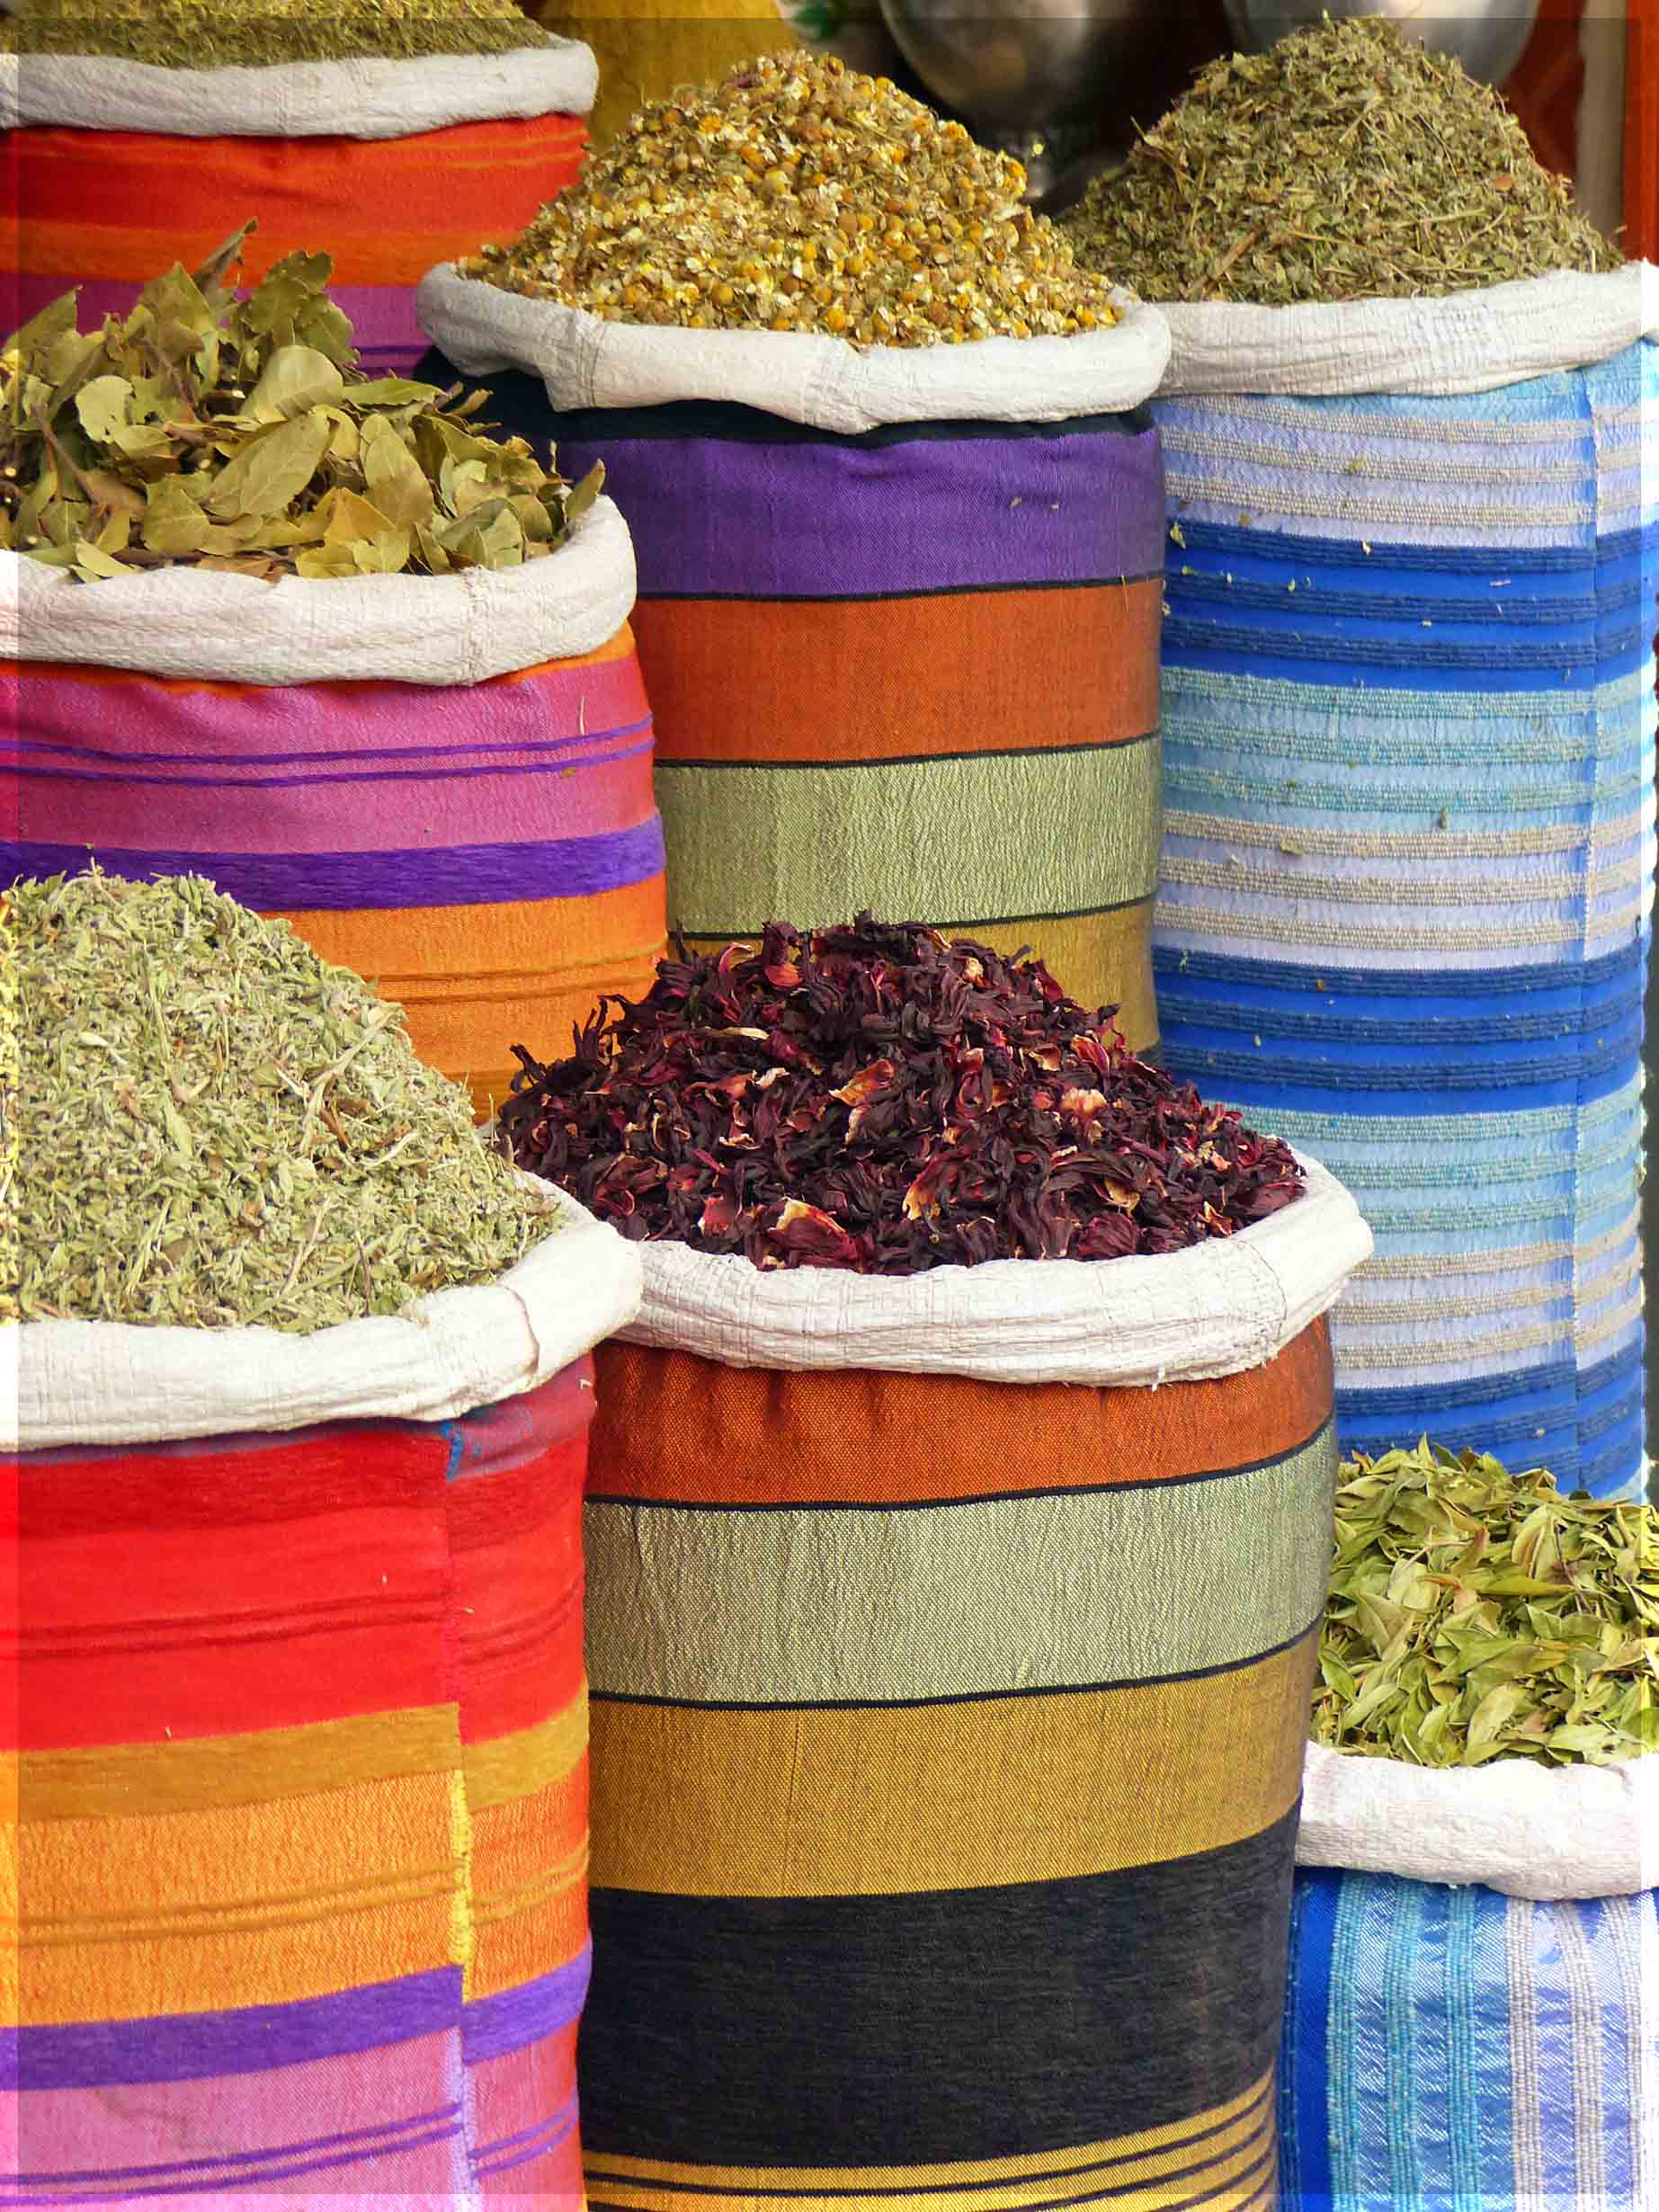 Colourful baskets of herbs and spices